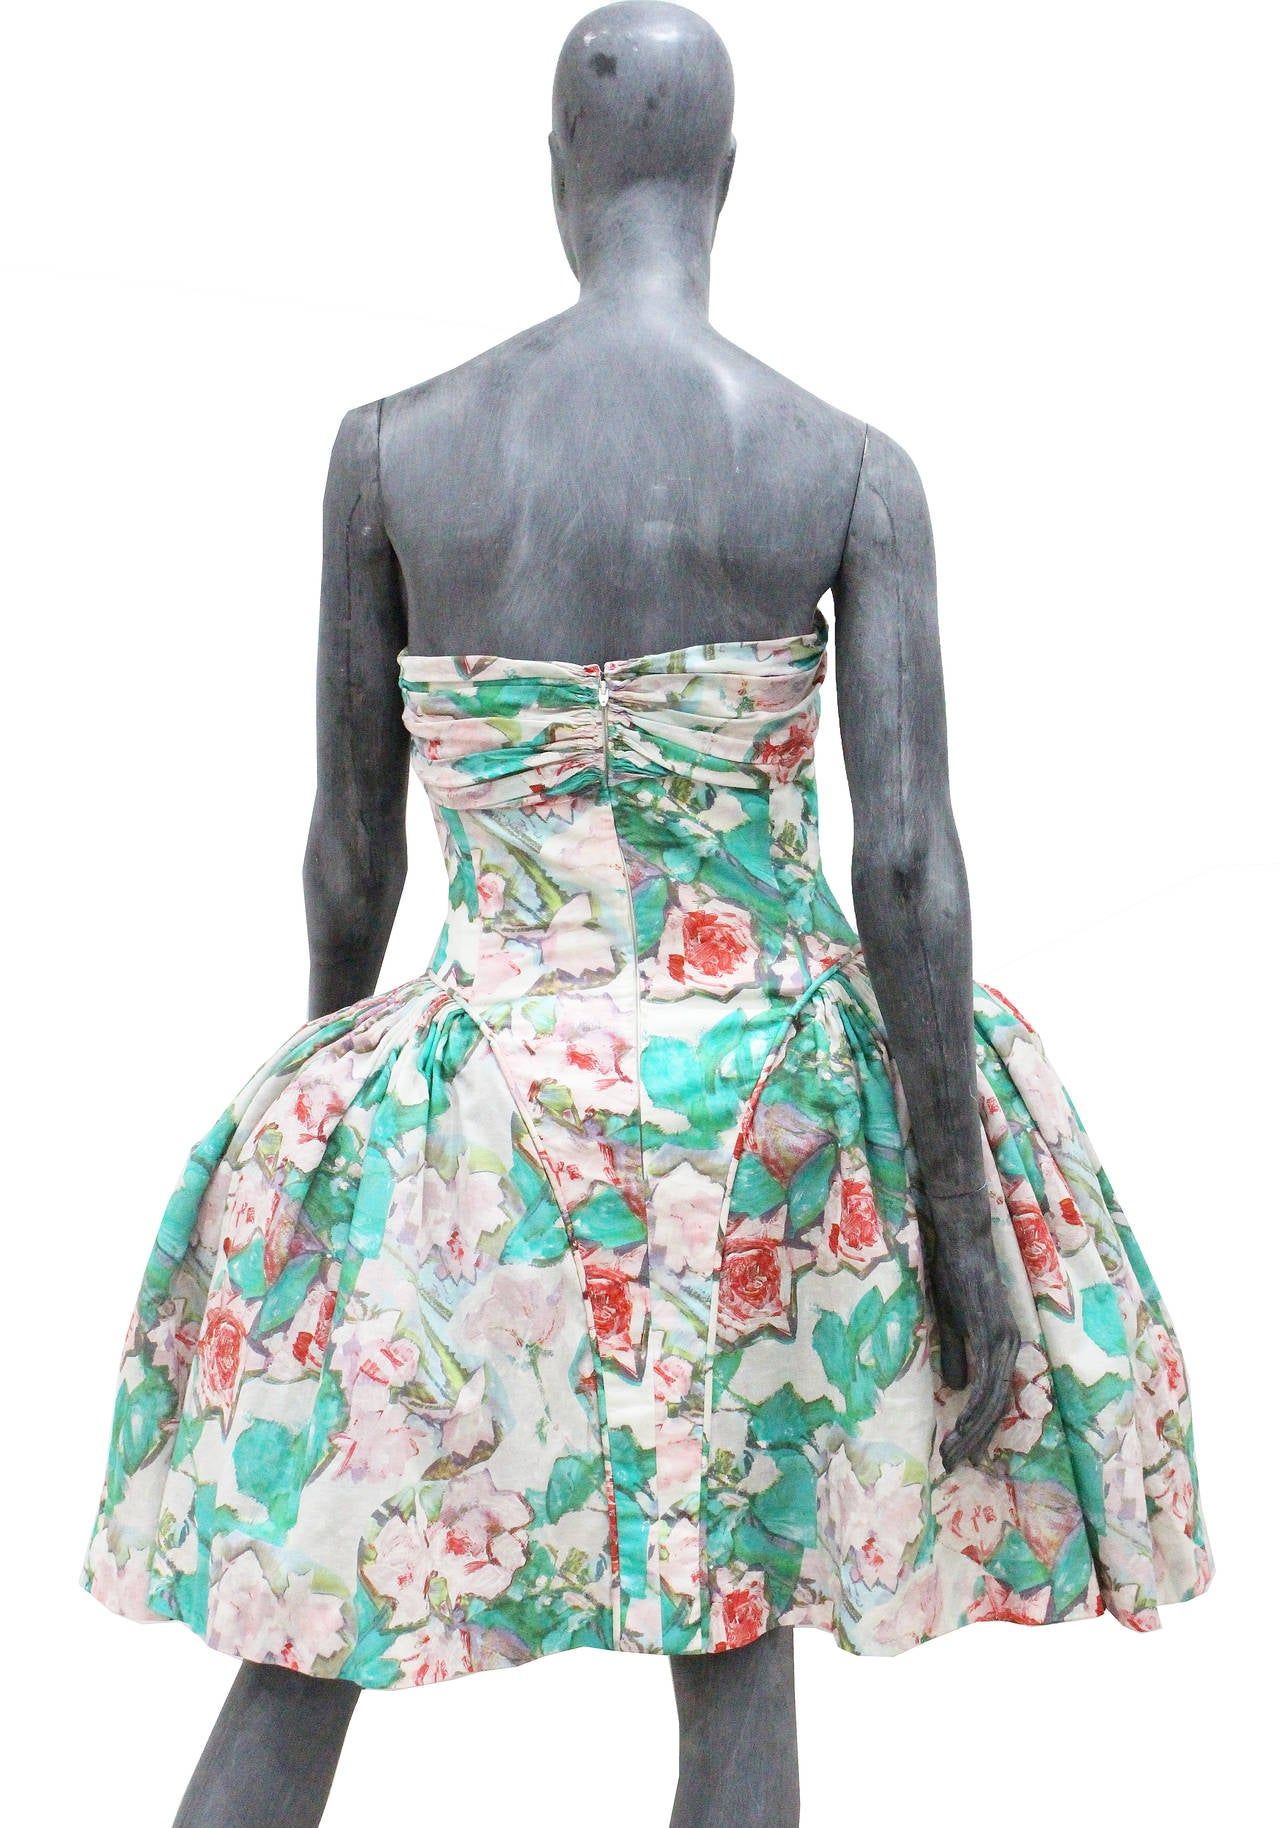 Iconic 1980s Karl Lagerfeld Marie Antoinette Dress S/S 1988 In Excellent Condition For Sale In London, GB